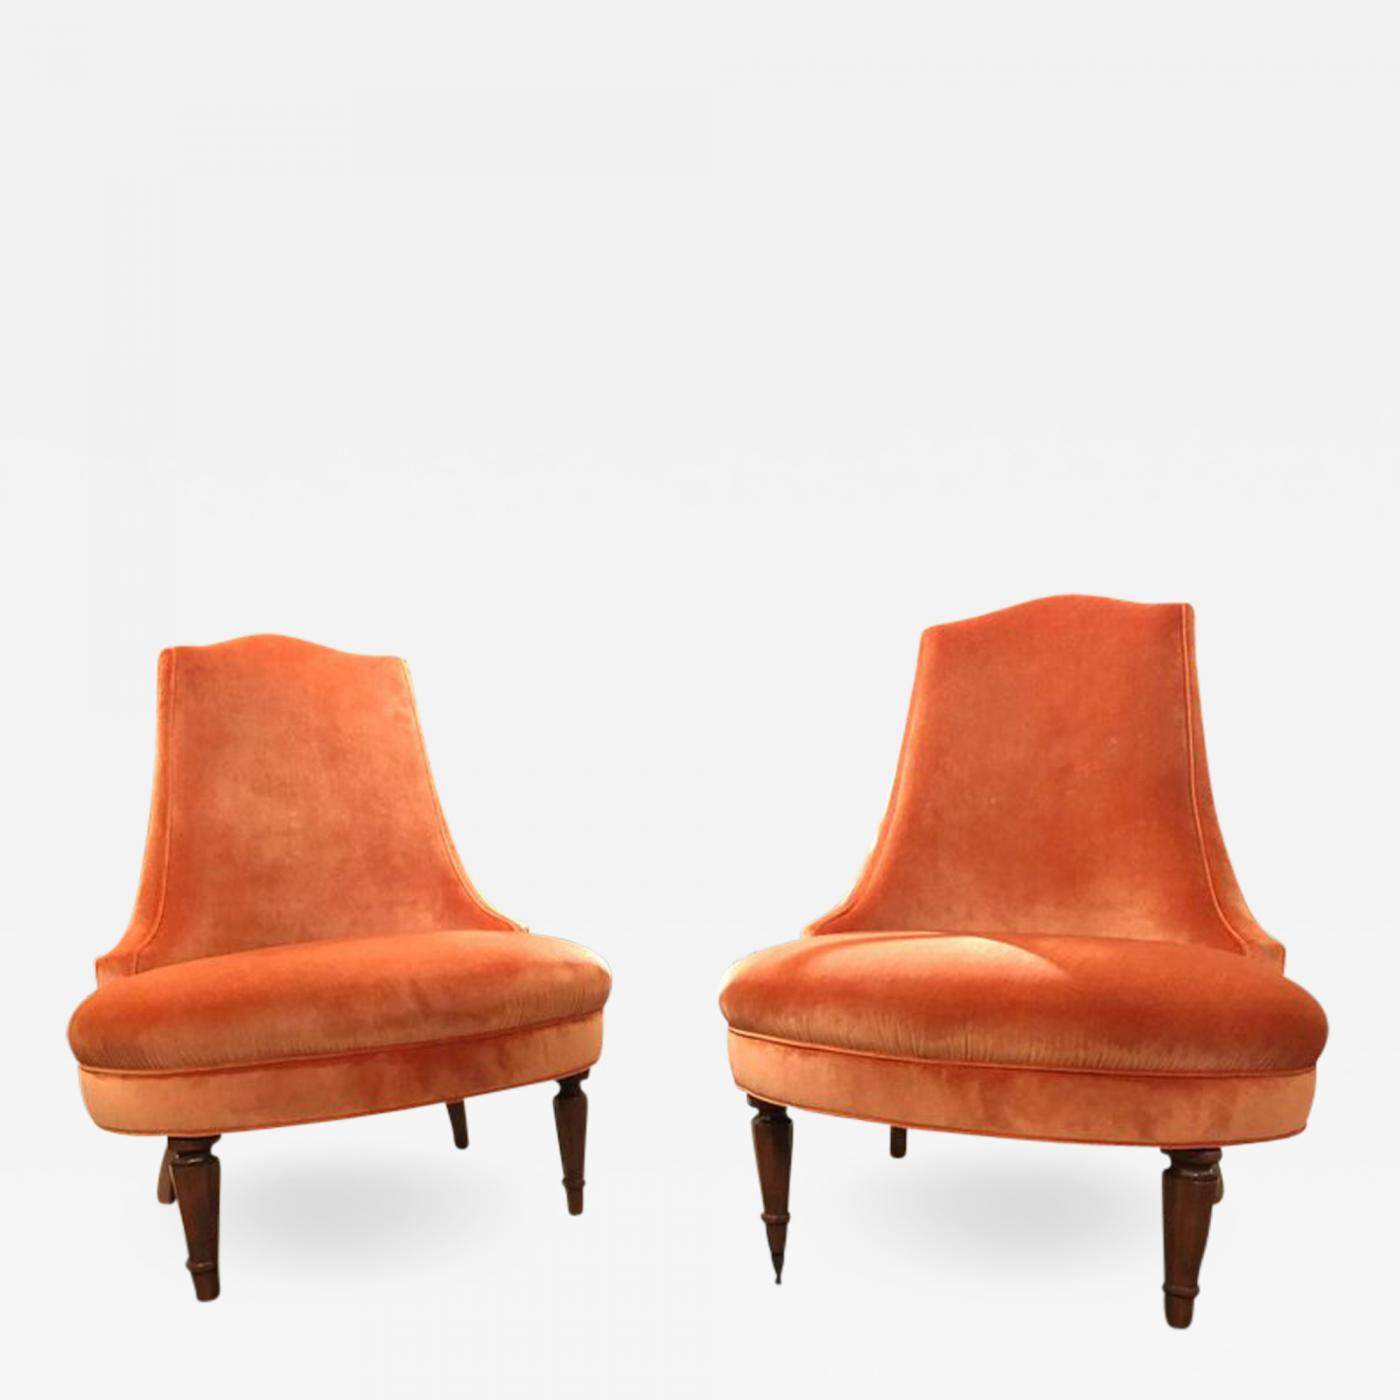 Velvet Slipper Chair Pair Of Regency Orange Velvet Slipper Chairs